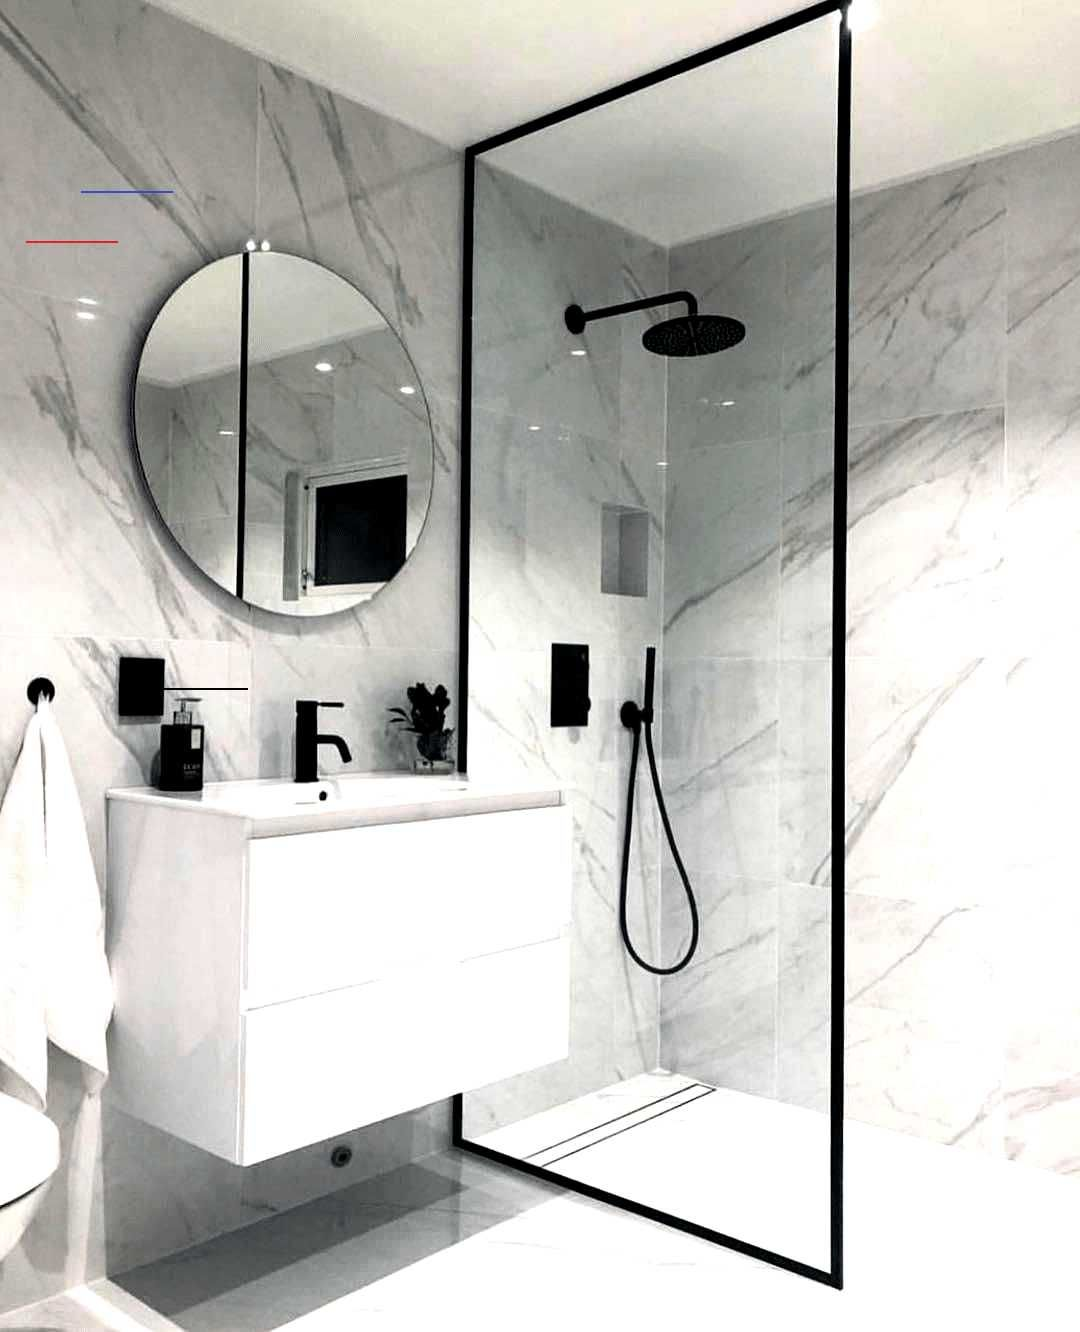 Bathroom Idea 312296624100179060 Bathroomideas Check Out This Bathroom Idea For Your Projects In 2020 Badezimmerideen Badezimmer Design Badezimmer Einrichtung Bathroom idea pictures pictures